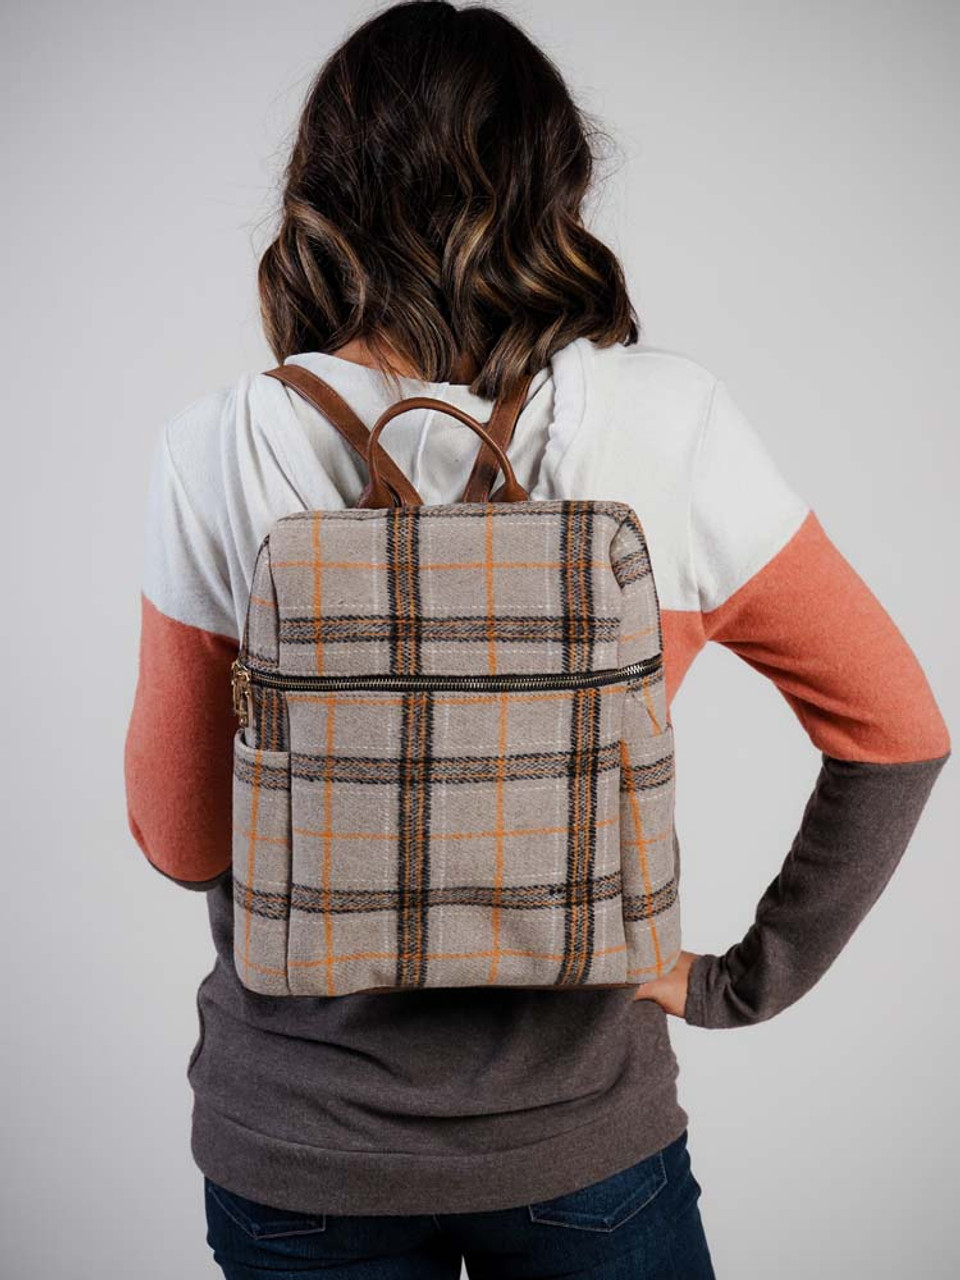 jen and co backpack tan and orange plaid  pockets